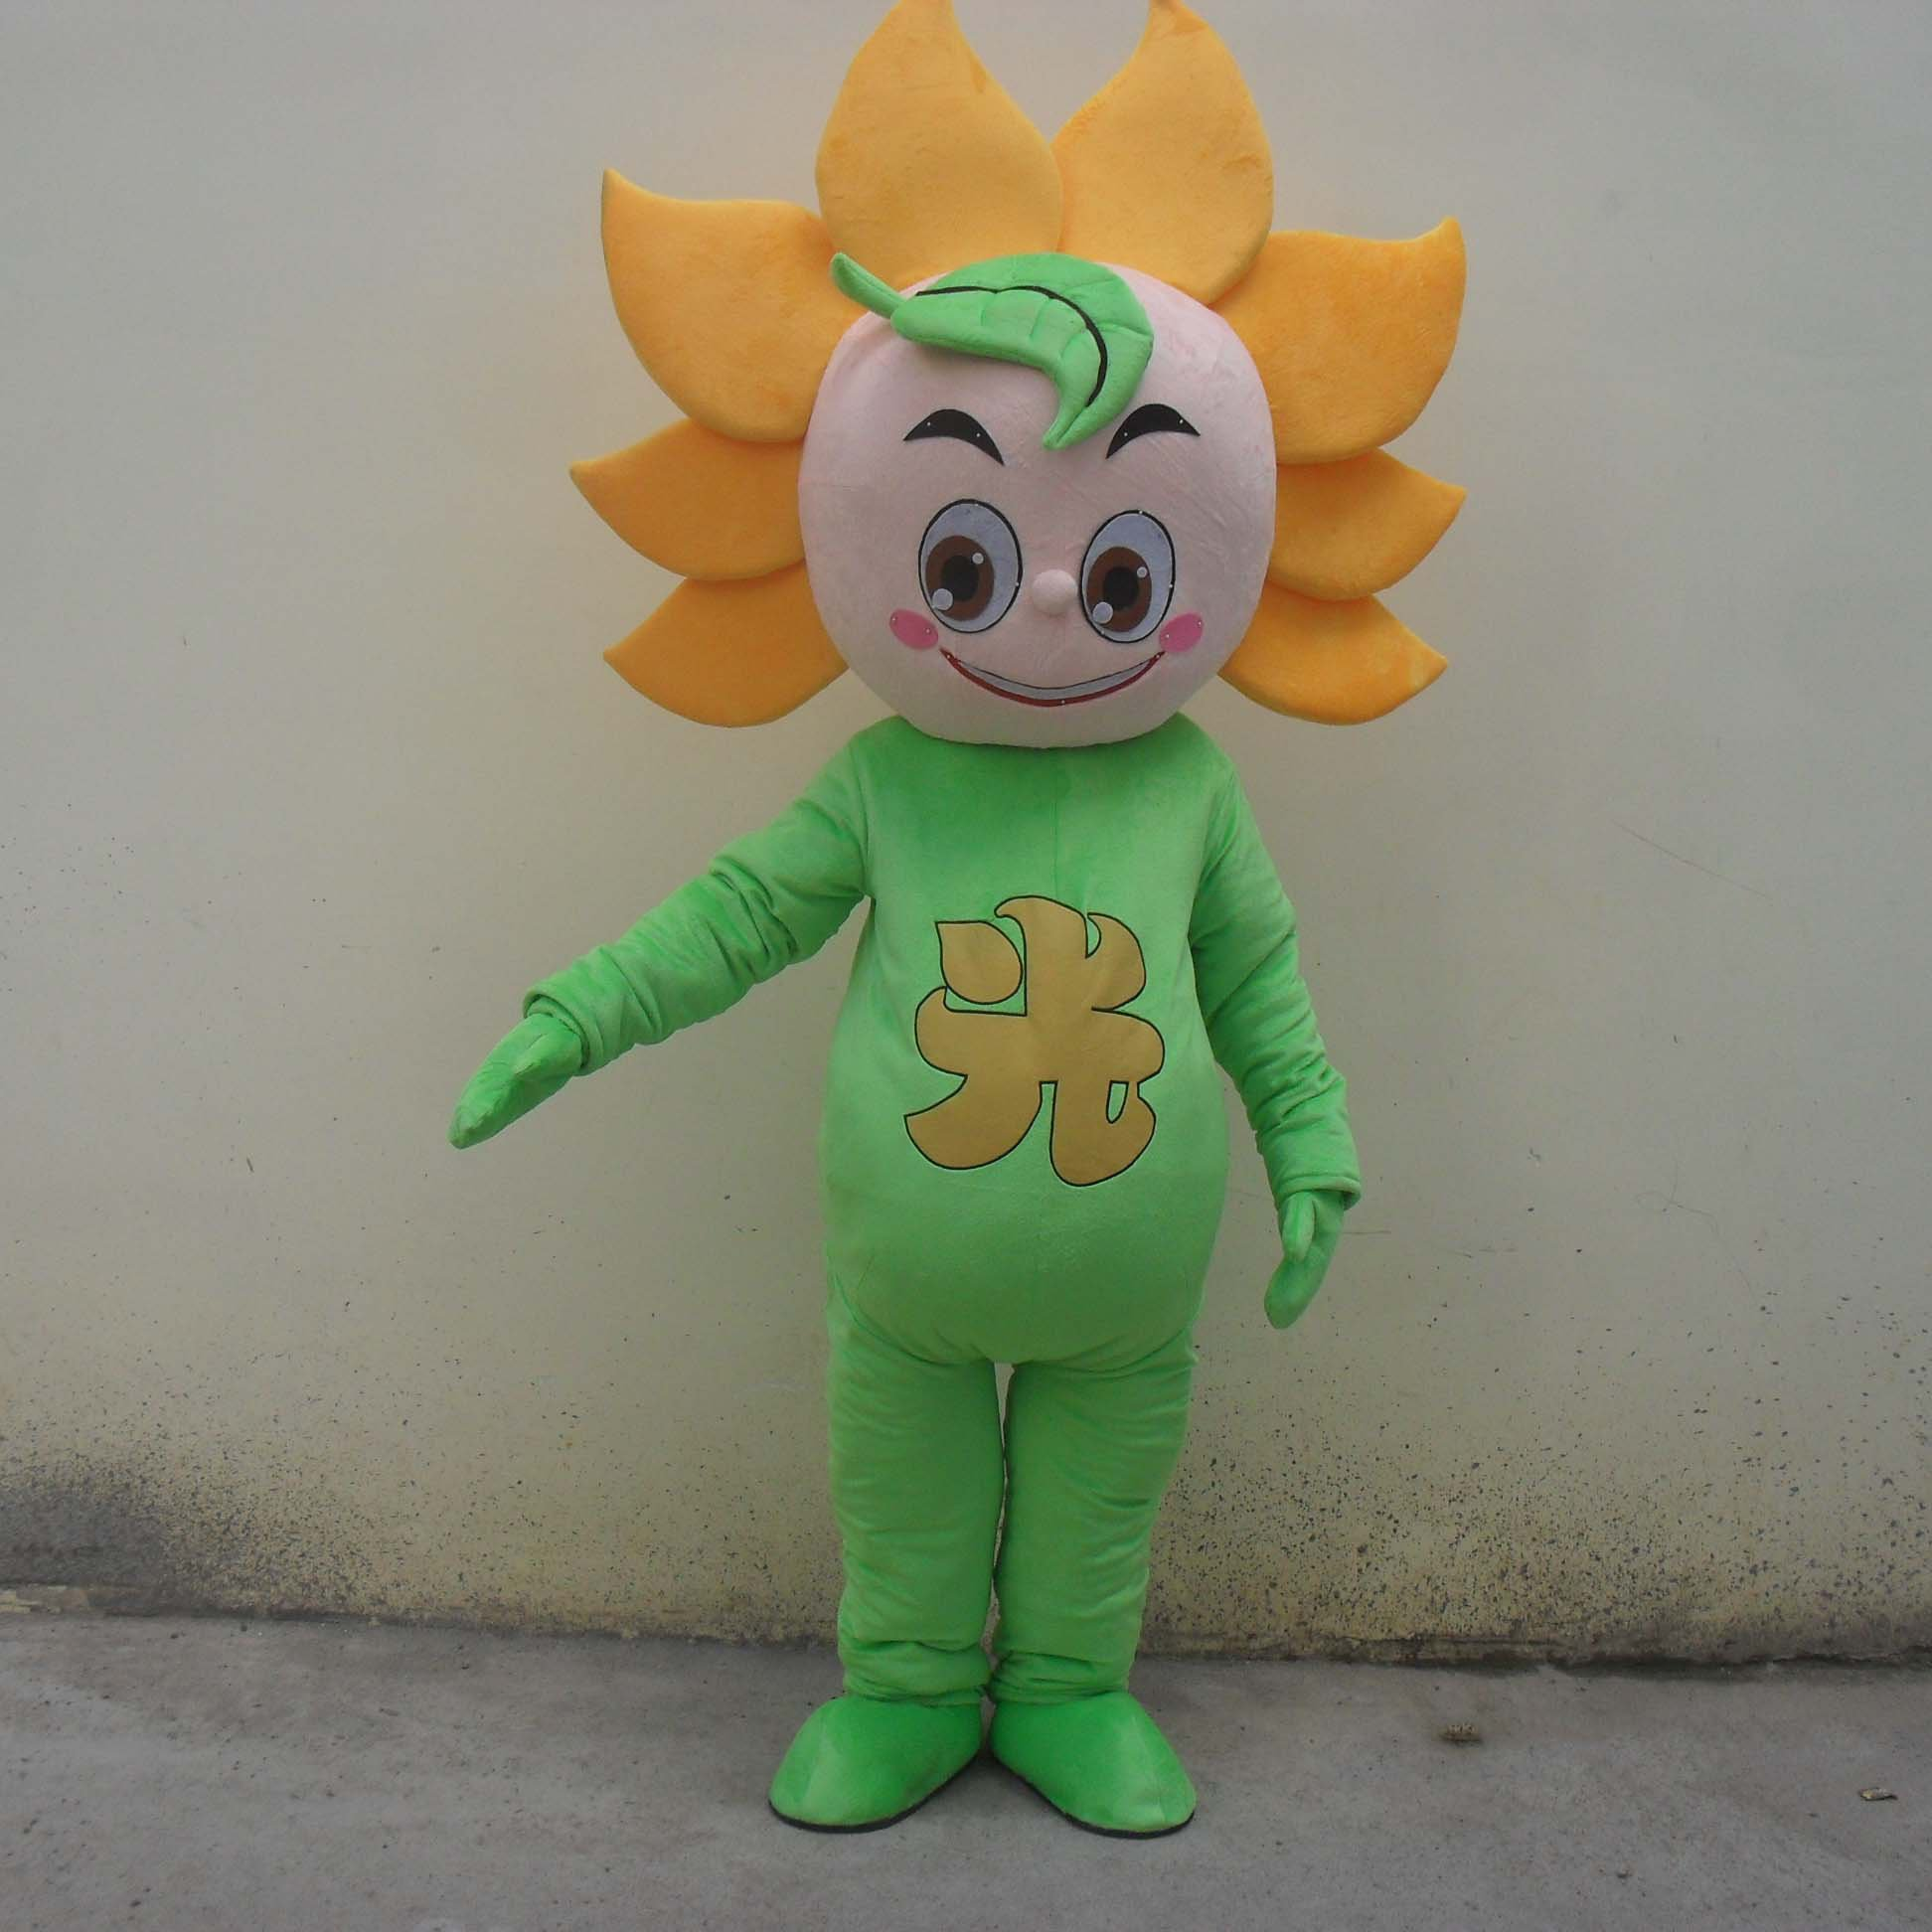 Cartoon Doll Clothing Plant Sunflower Cartoon Walking Doll Clothing Cartoon Show Clothing Doll Clothes Sunflowers Mascot Costume